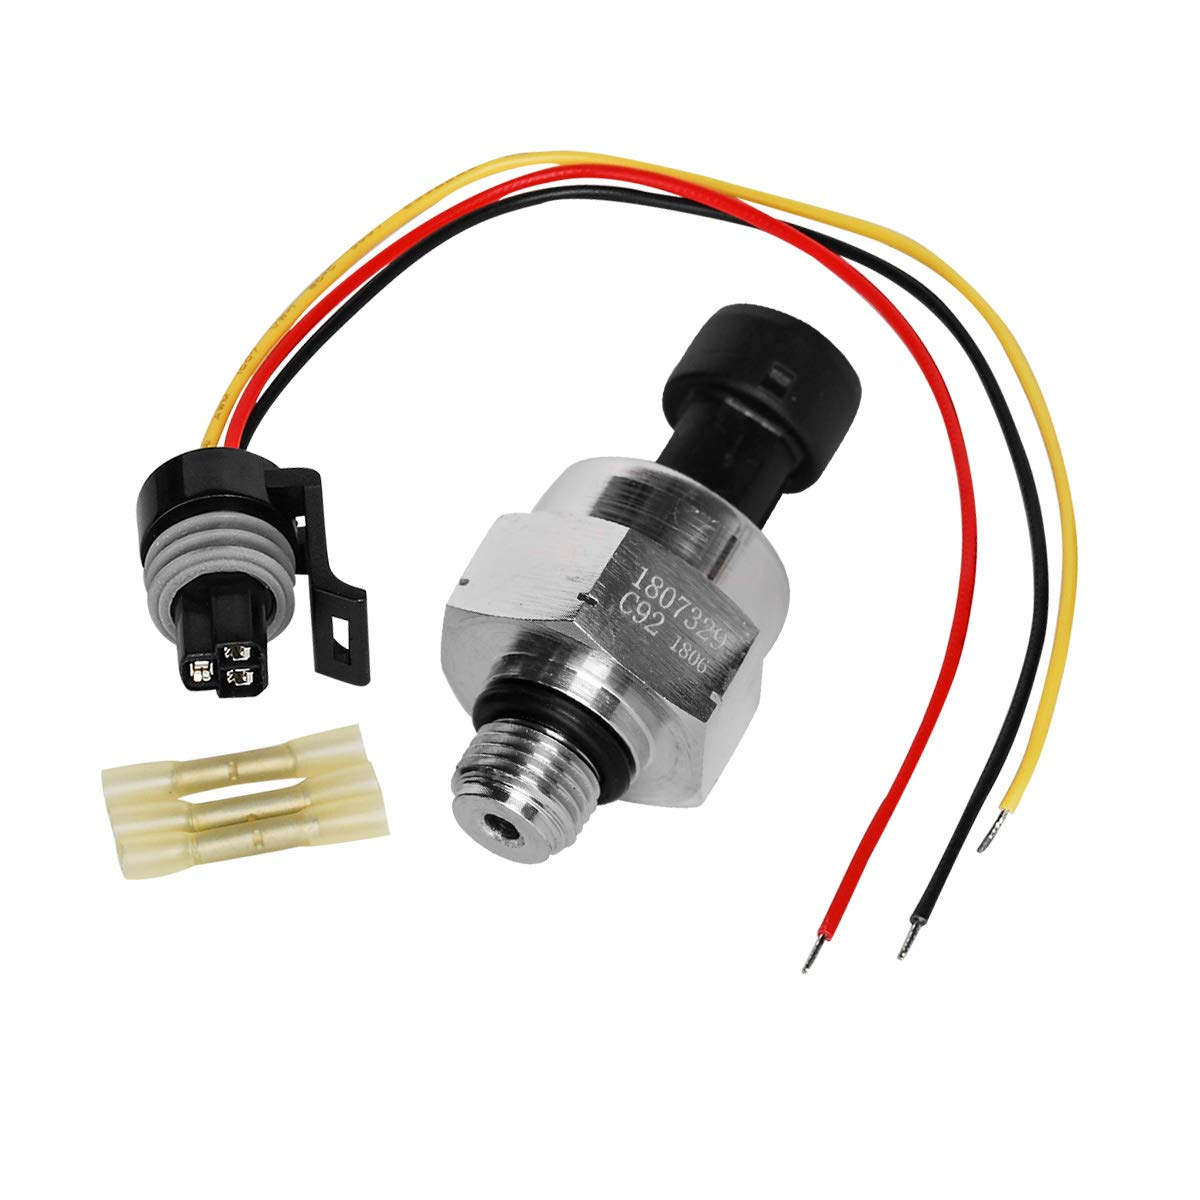 SaferCCTV Injection Control Pressure Sensor Set for 1995-2003 Ford 7.3 Powerstroke Replacement F4TZ-9F838-A, F6TZ-9F838-A,1807329C92, ICP102